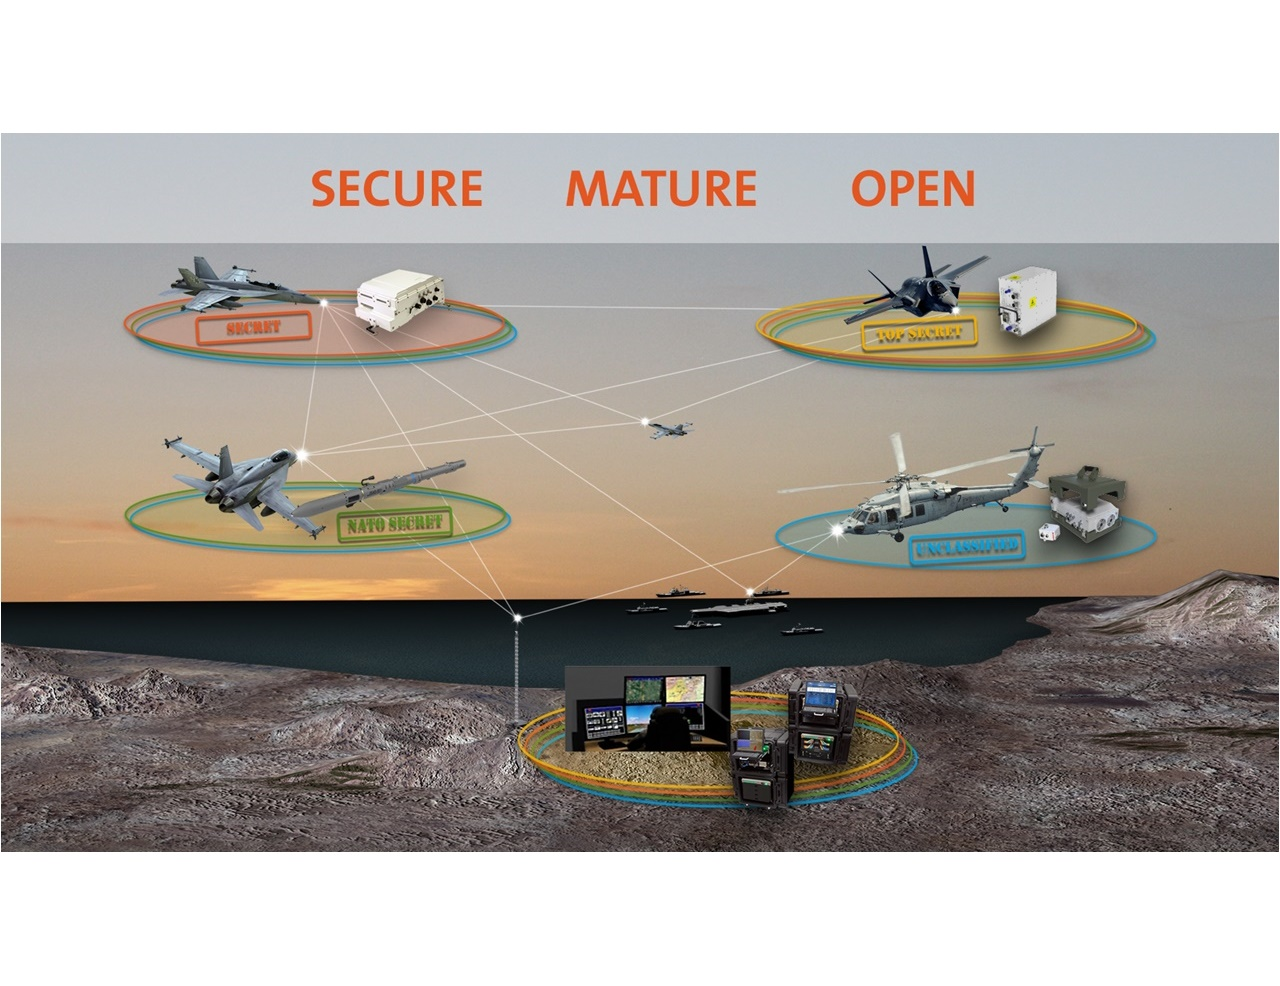 Image depicting secure, mature and open communication with all types of aircraft